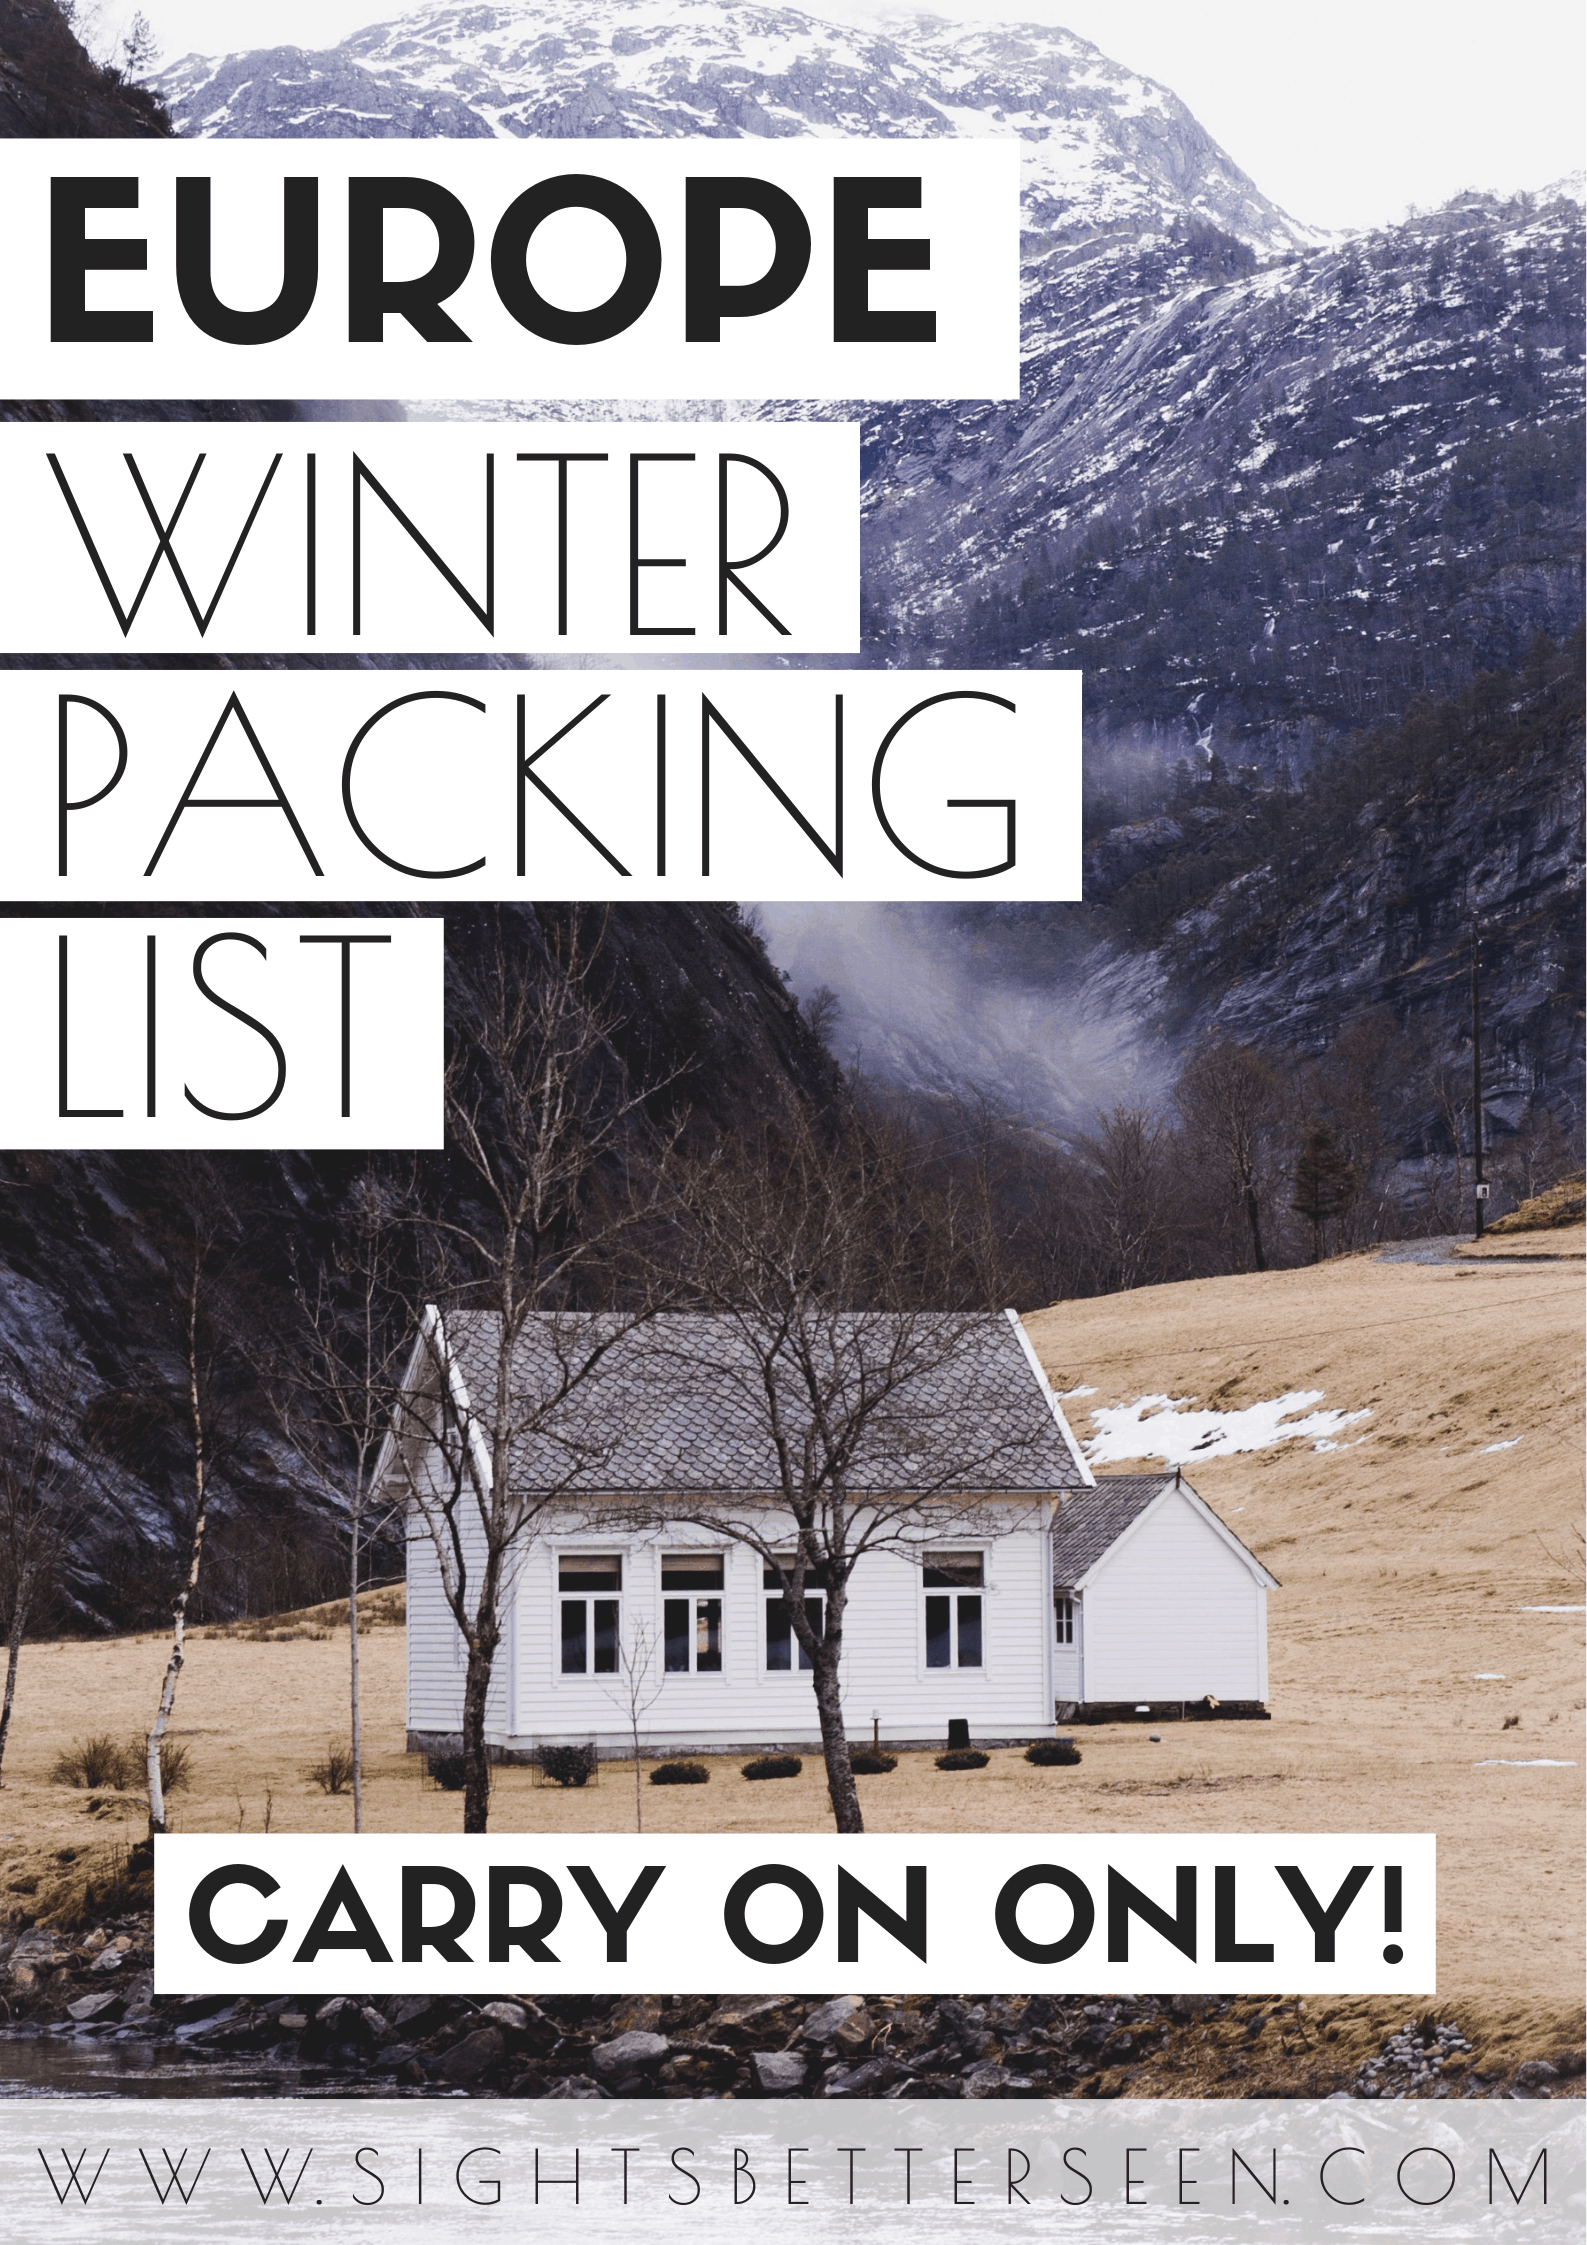 The best winter packing list in Europe for women traveling with a carry on suitcase.